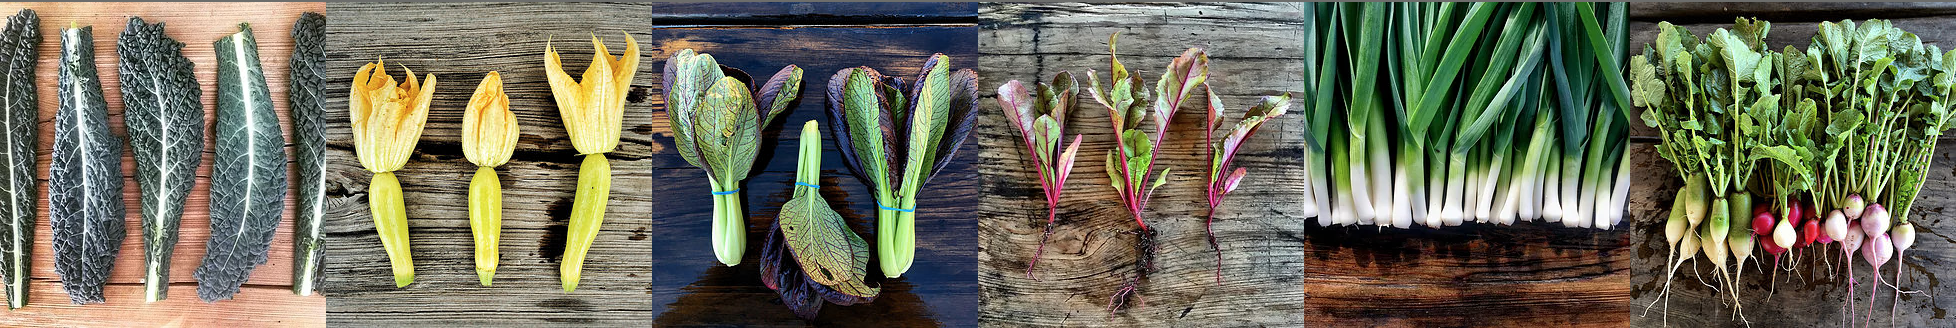 vegetable panorama